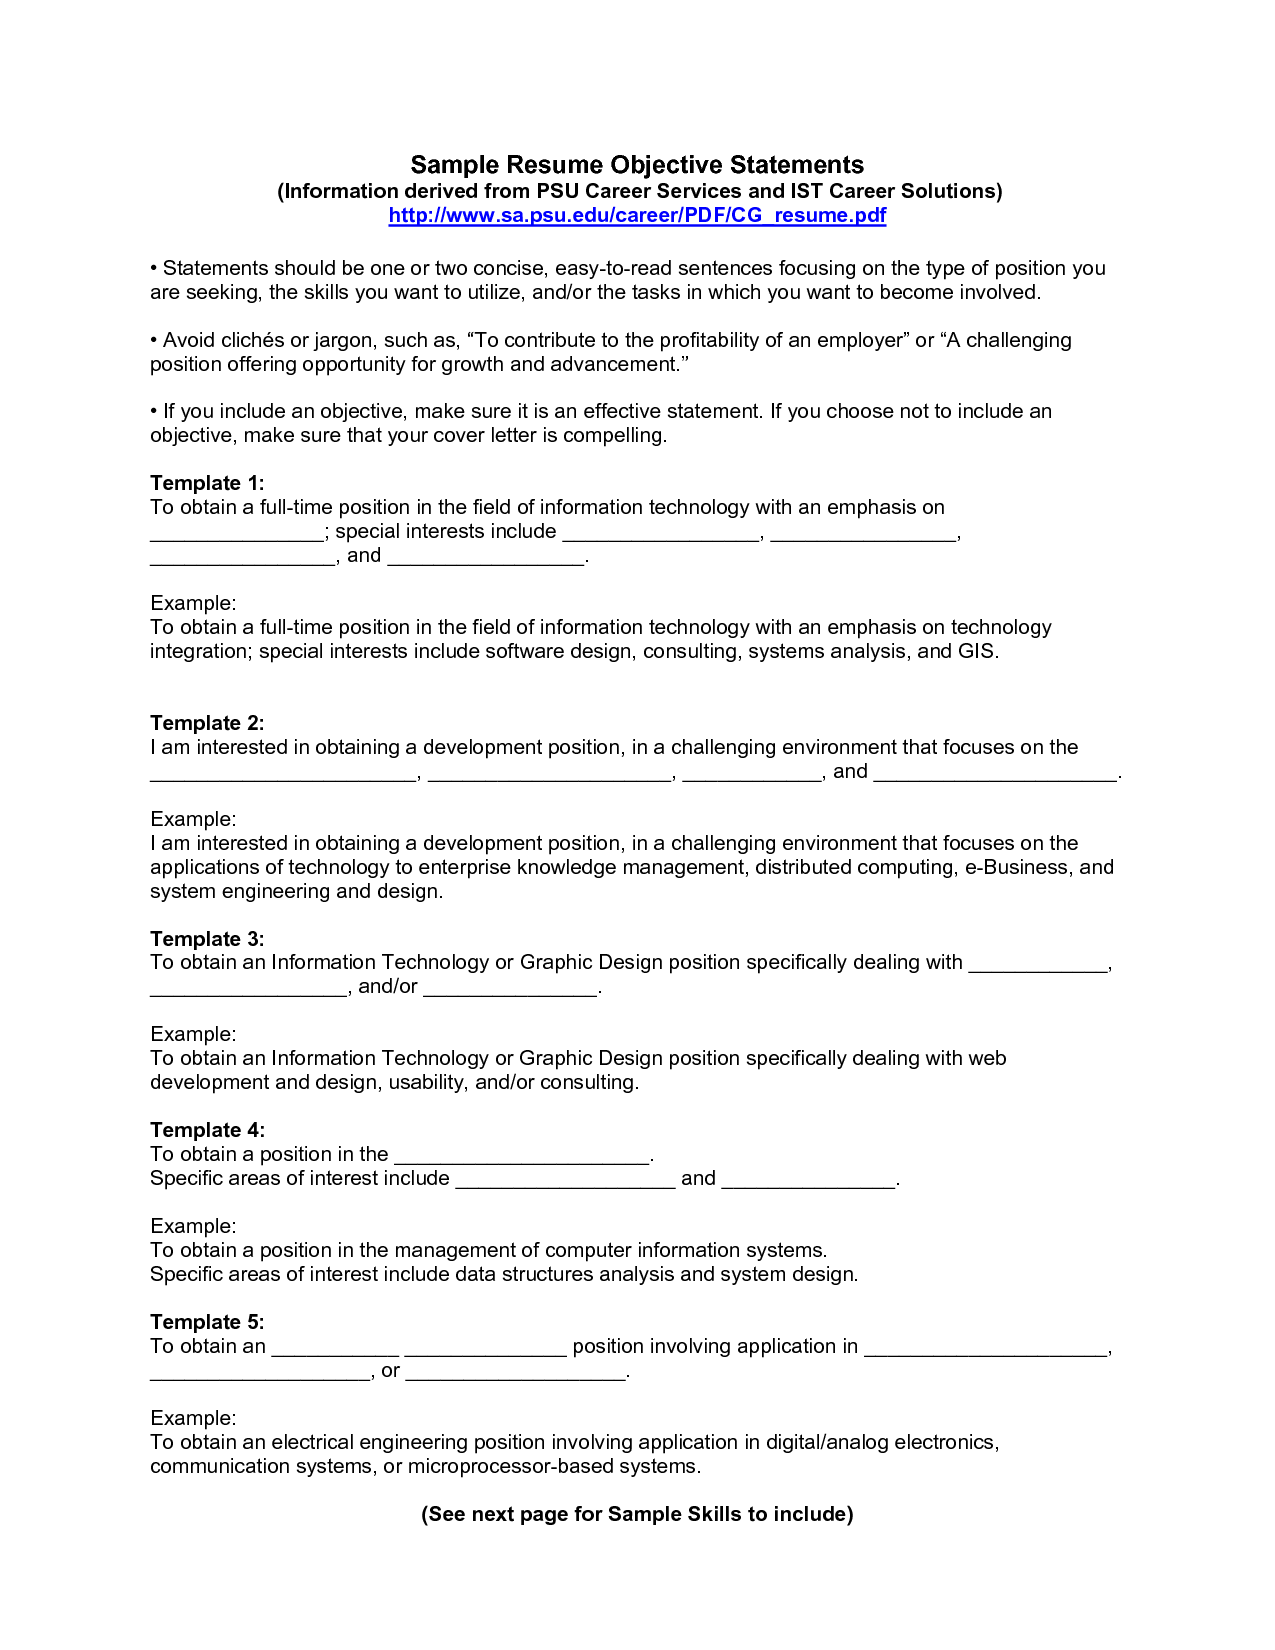 Sample Engineering Management Resume Resume Objective Statement For Teacher  Httpwww.resumecareer .